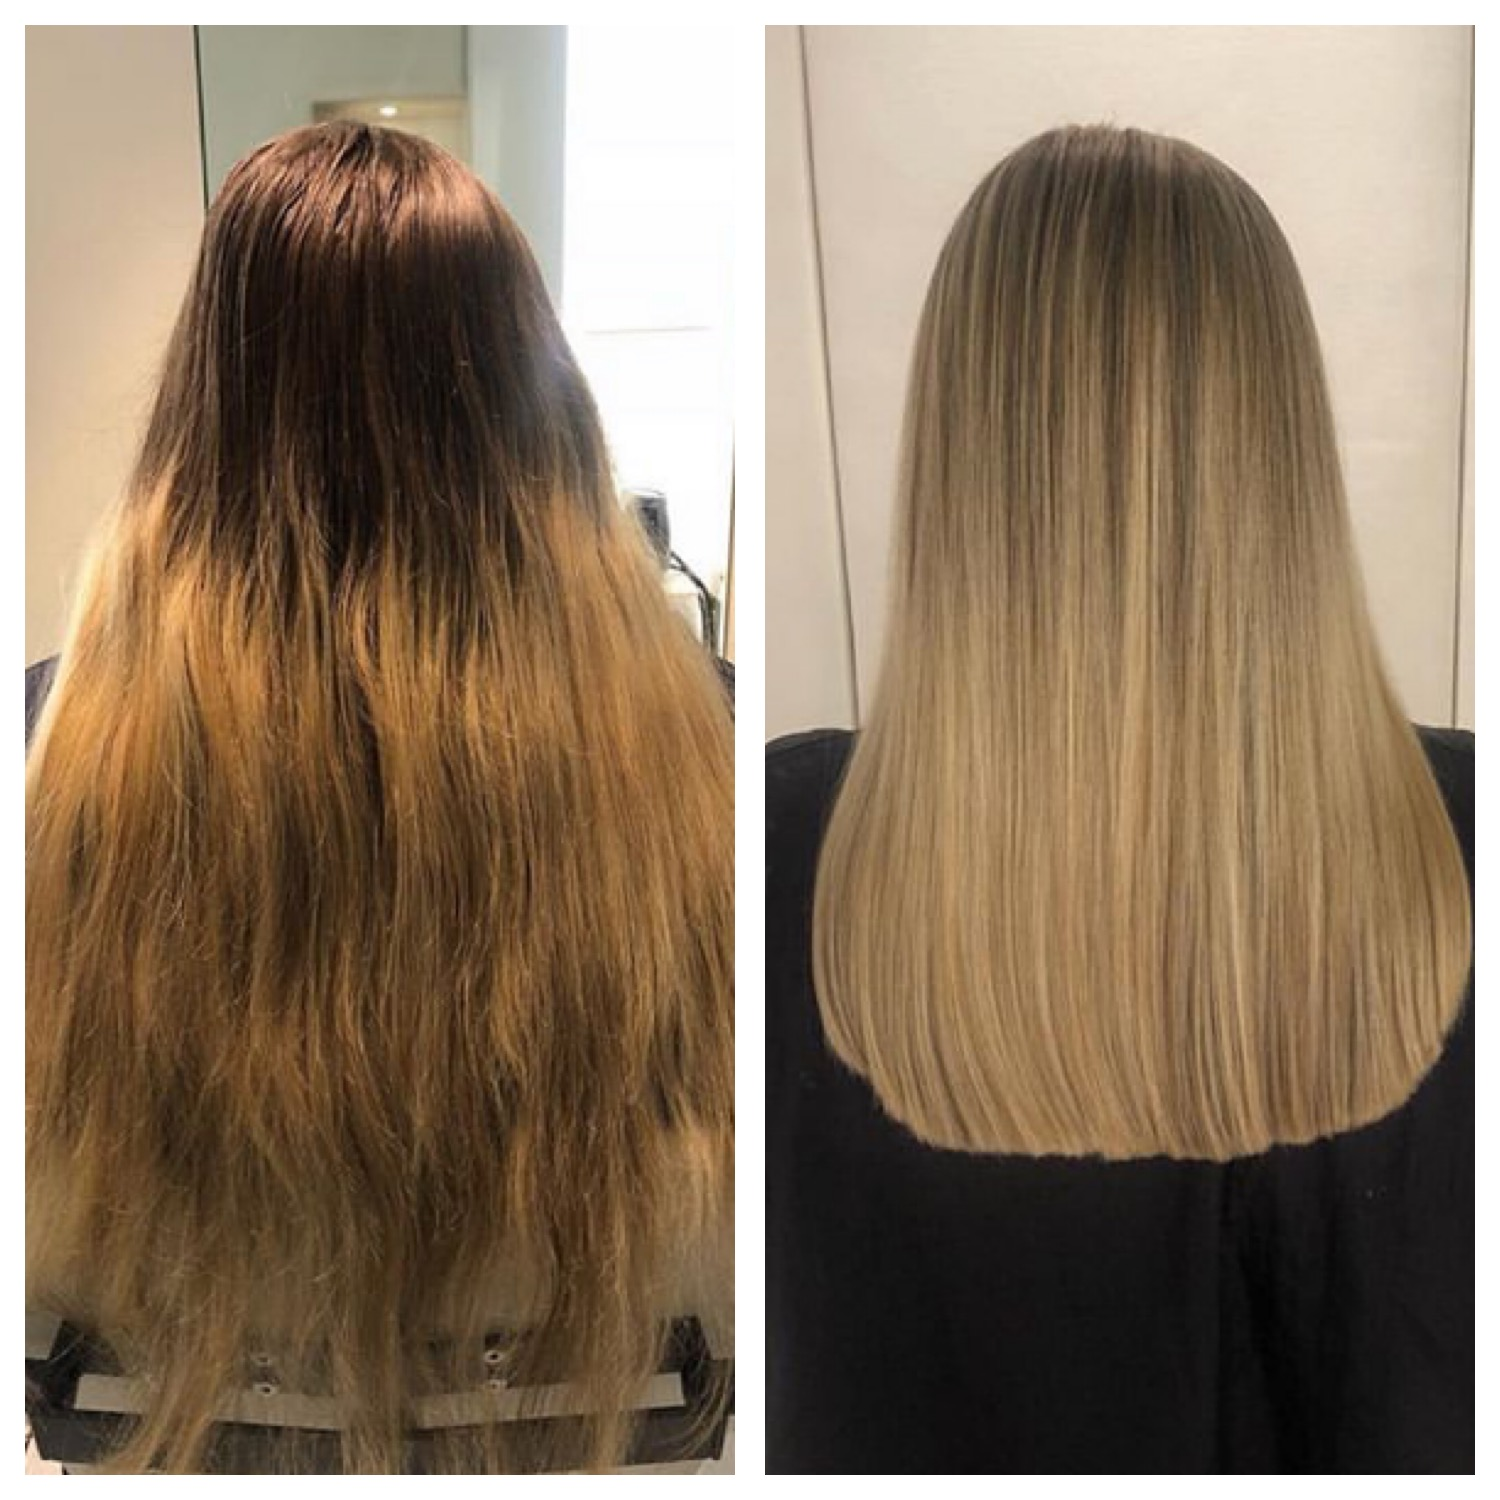 633256438e12 Long medium blonde hair being upgraded to an amazing fresh blonde with a  healthy chop by